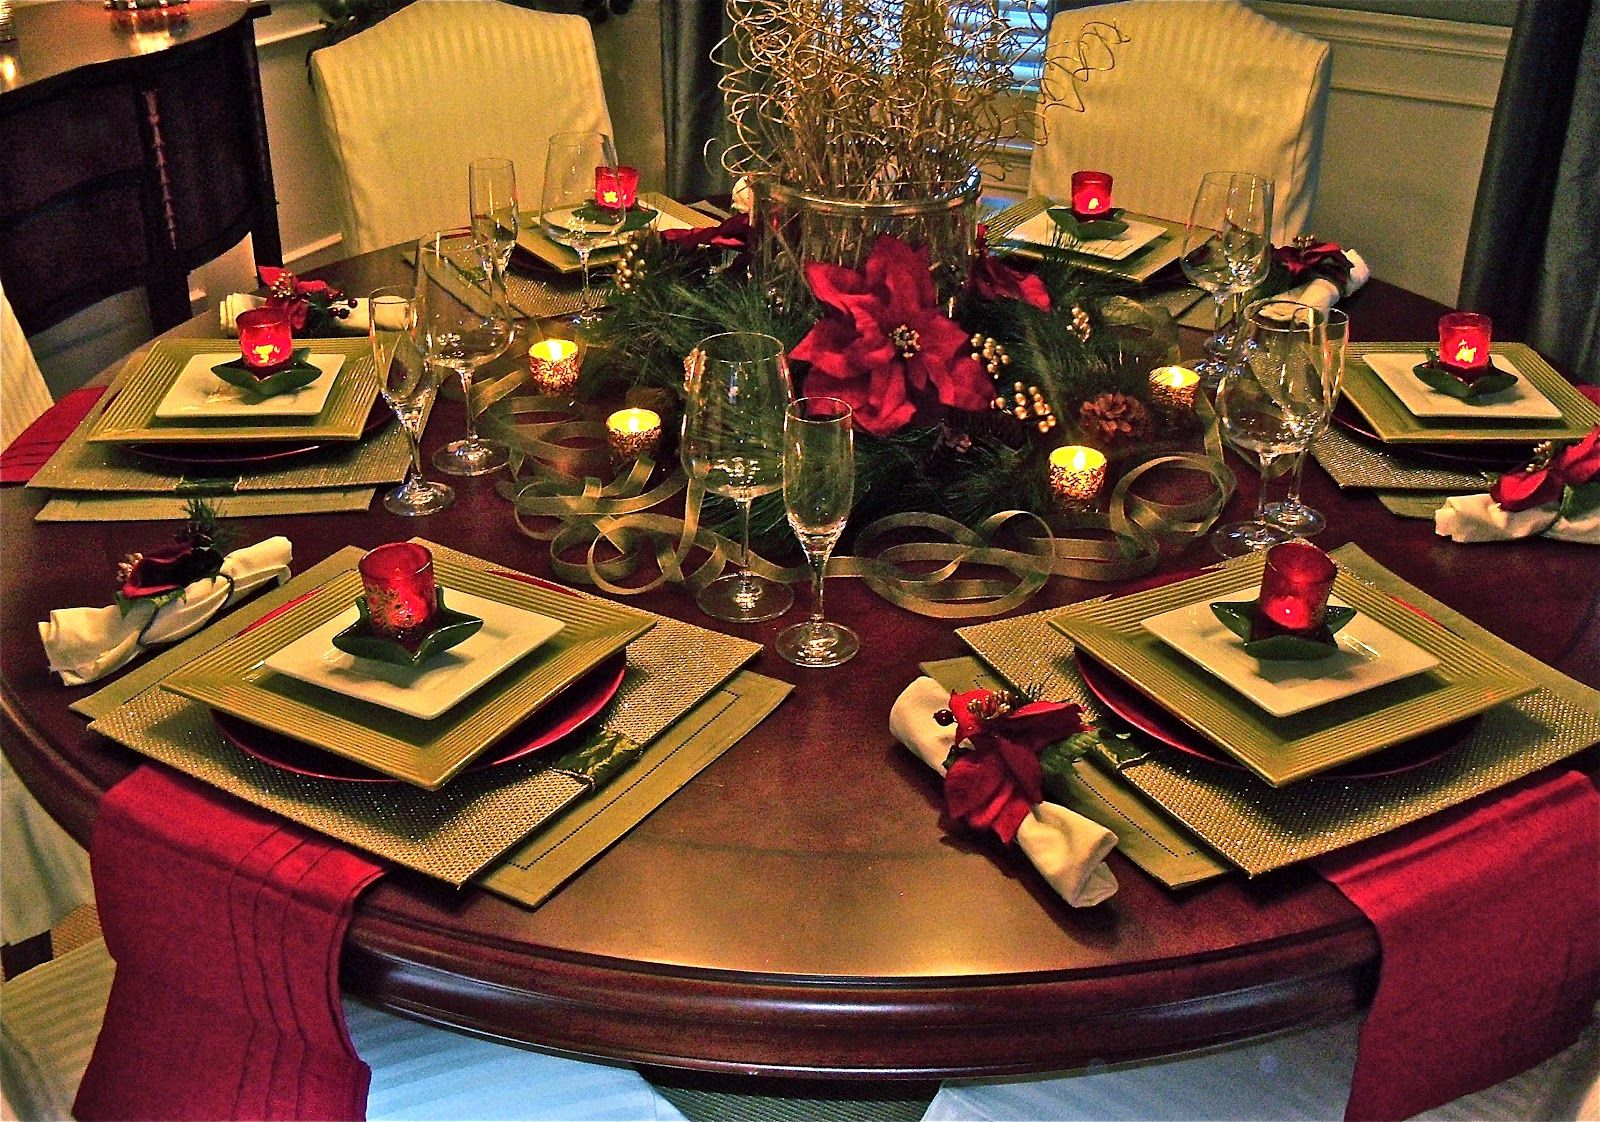 Recognition Holiday Table Settings Christmas Table Decorations